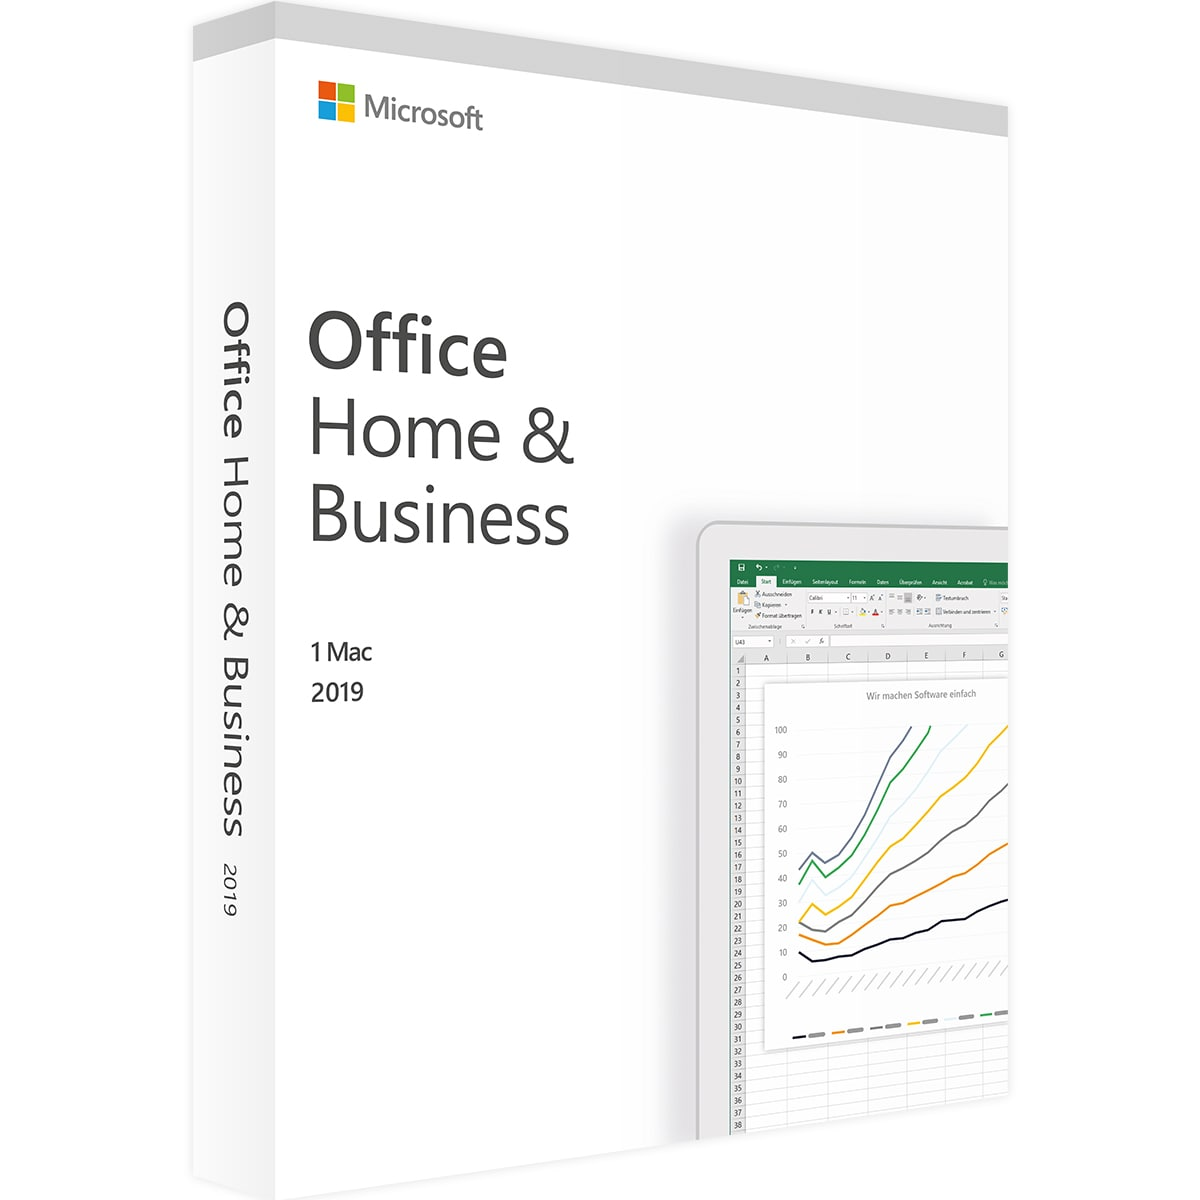 office-home-and-business-2019-mac-min